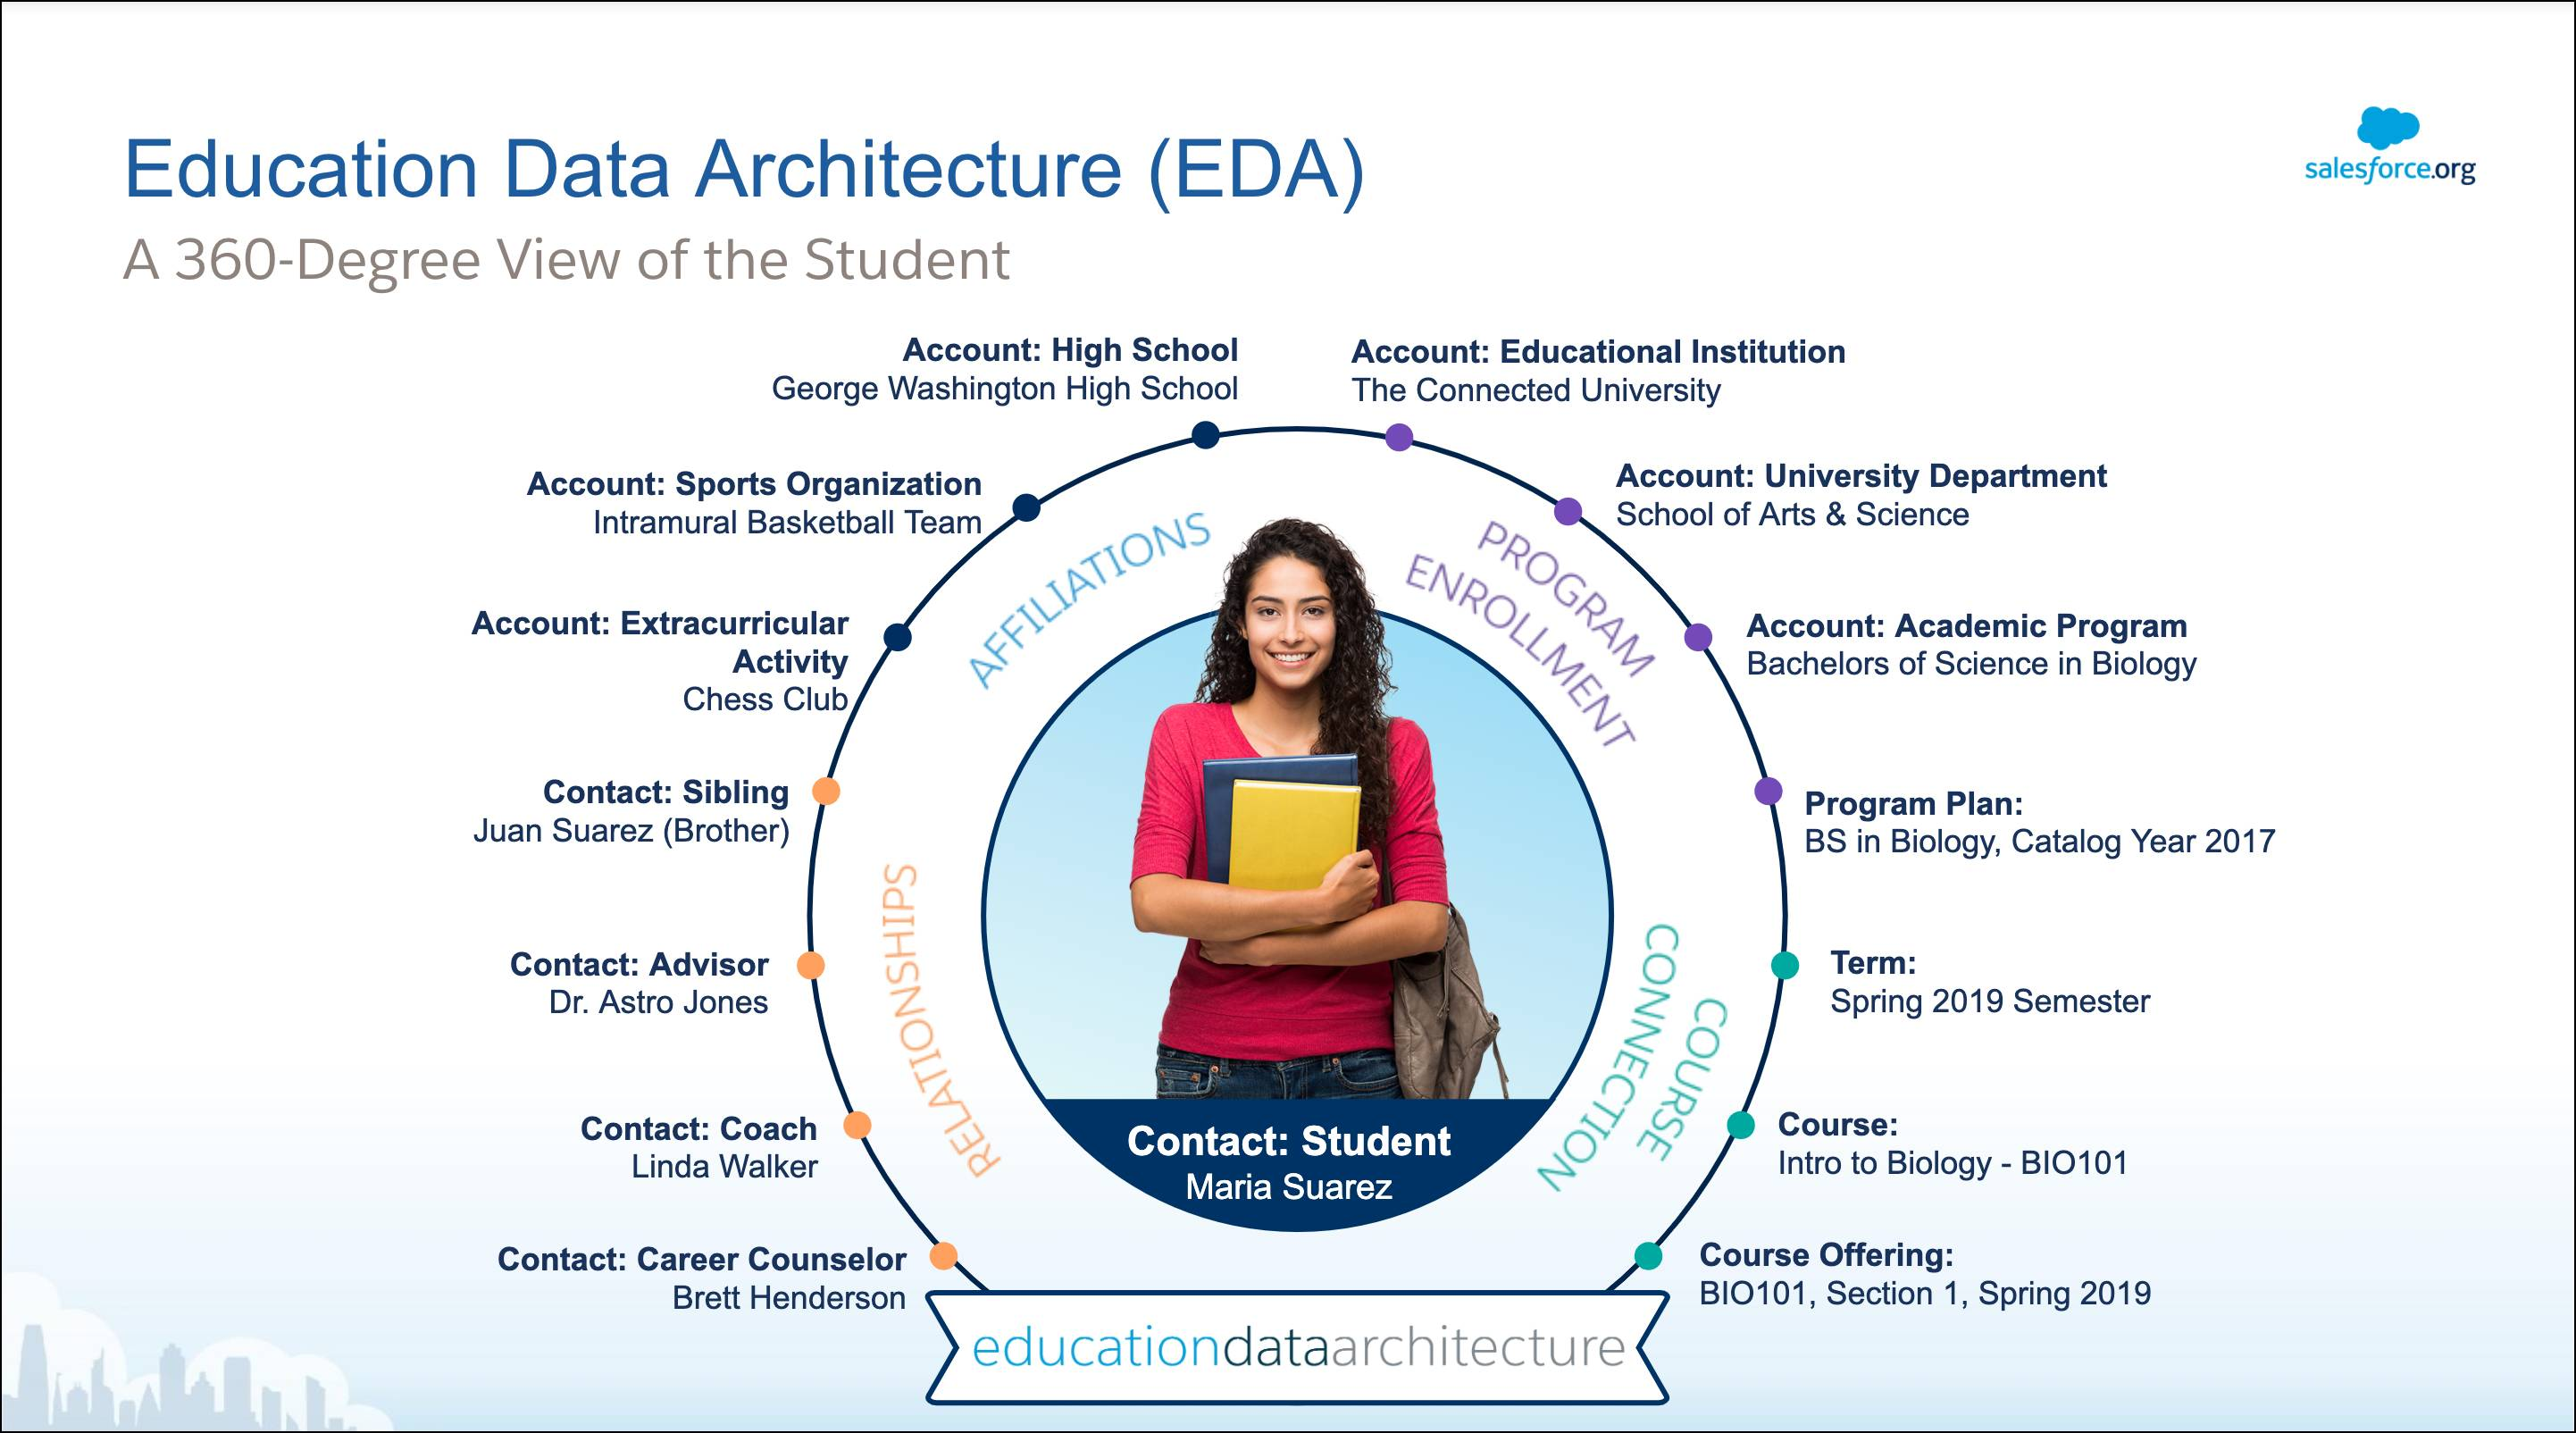 Education Data Architecture (EDA) provides a 360-Degree view of the student with components like Relationships, Affiliations, Program Enrollment, and Course Connections.